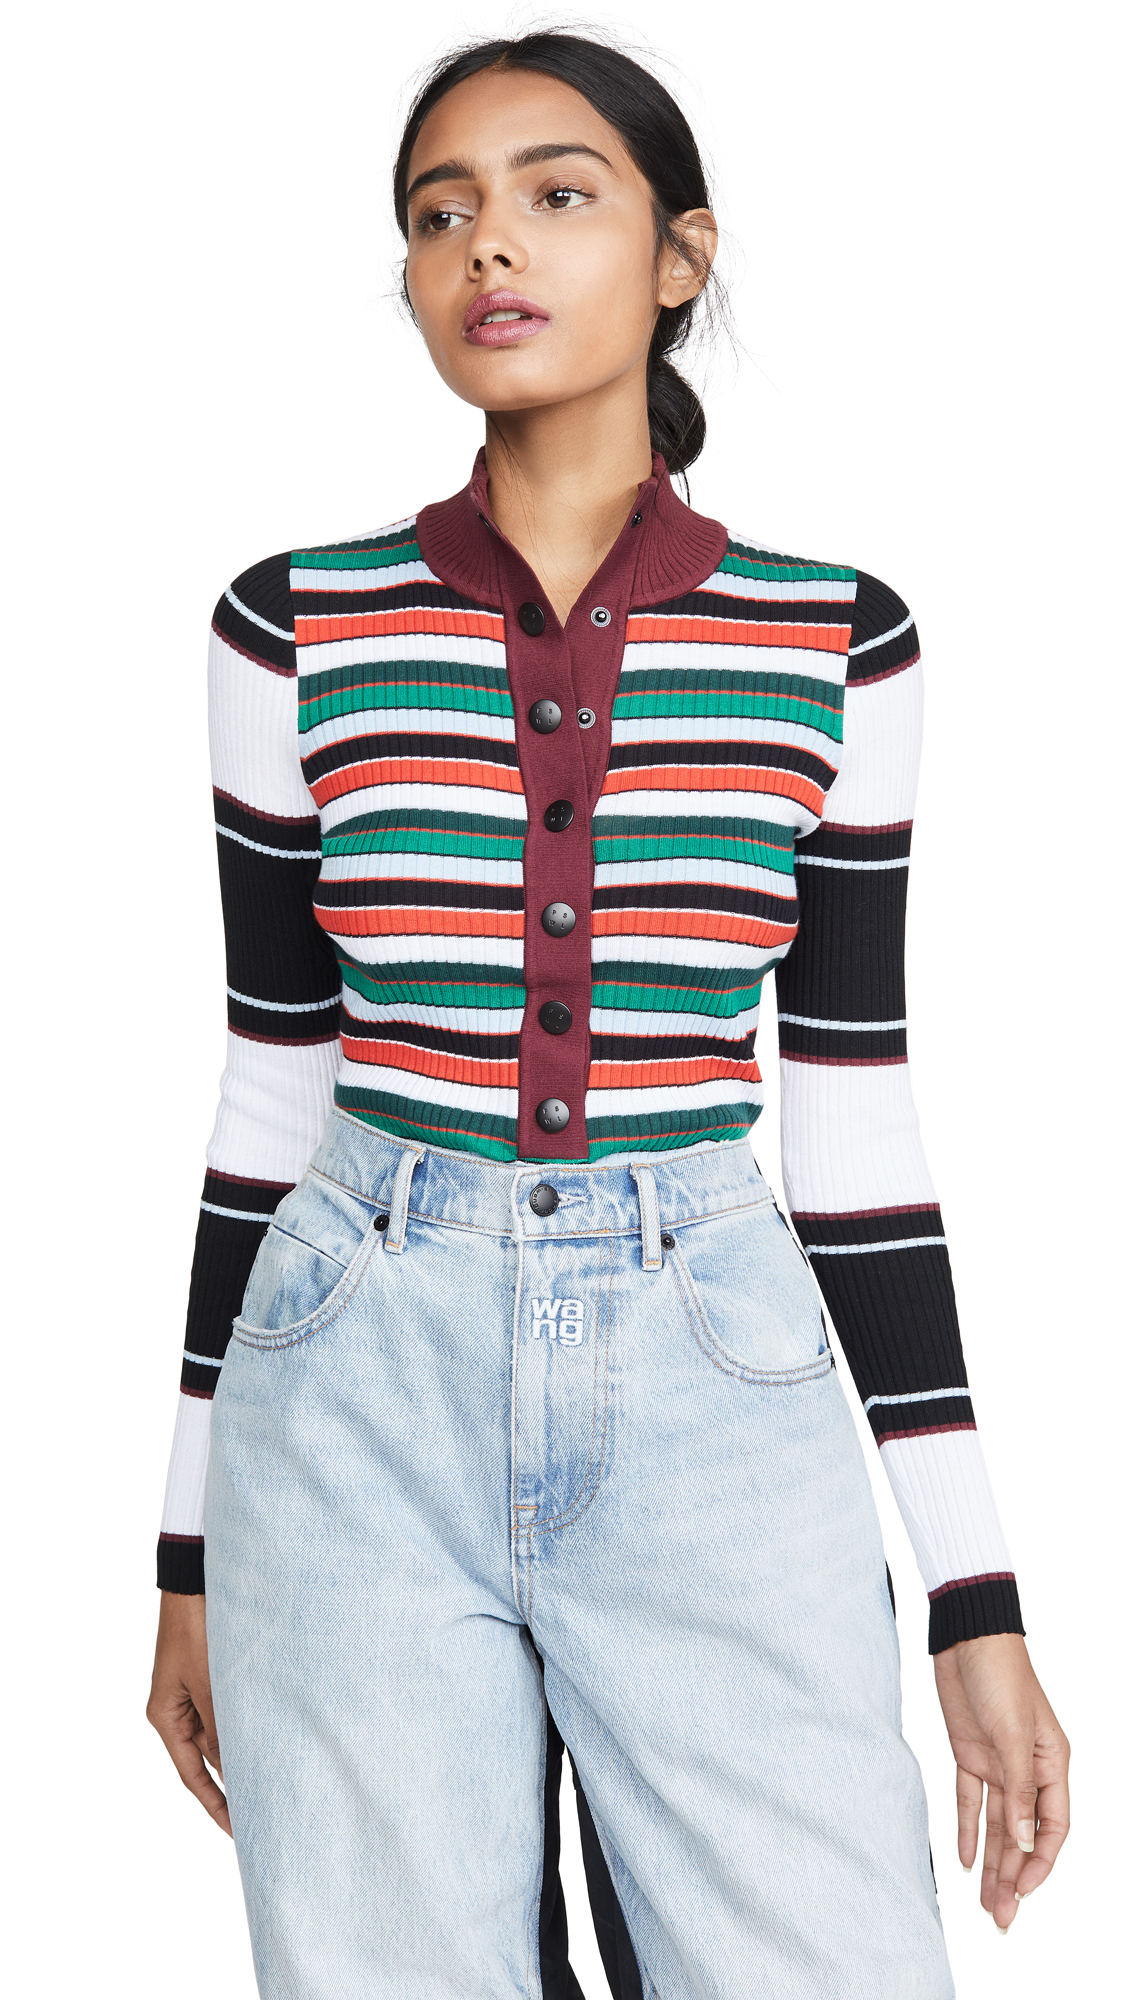 Buy Proenza Schouler White Label online - photo of Proenza Schouler White Label Rugby Striped Turtleneck Sweater